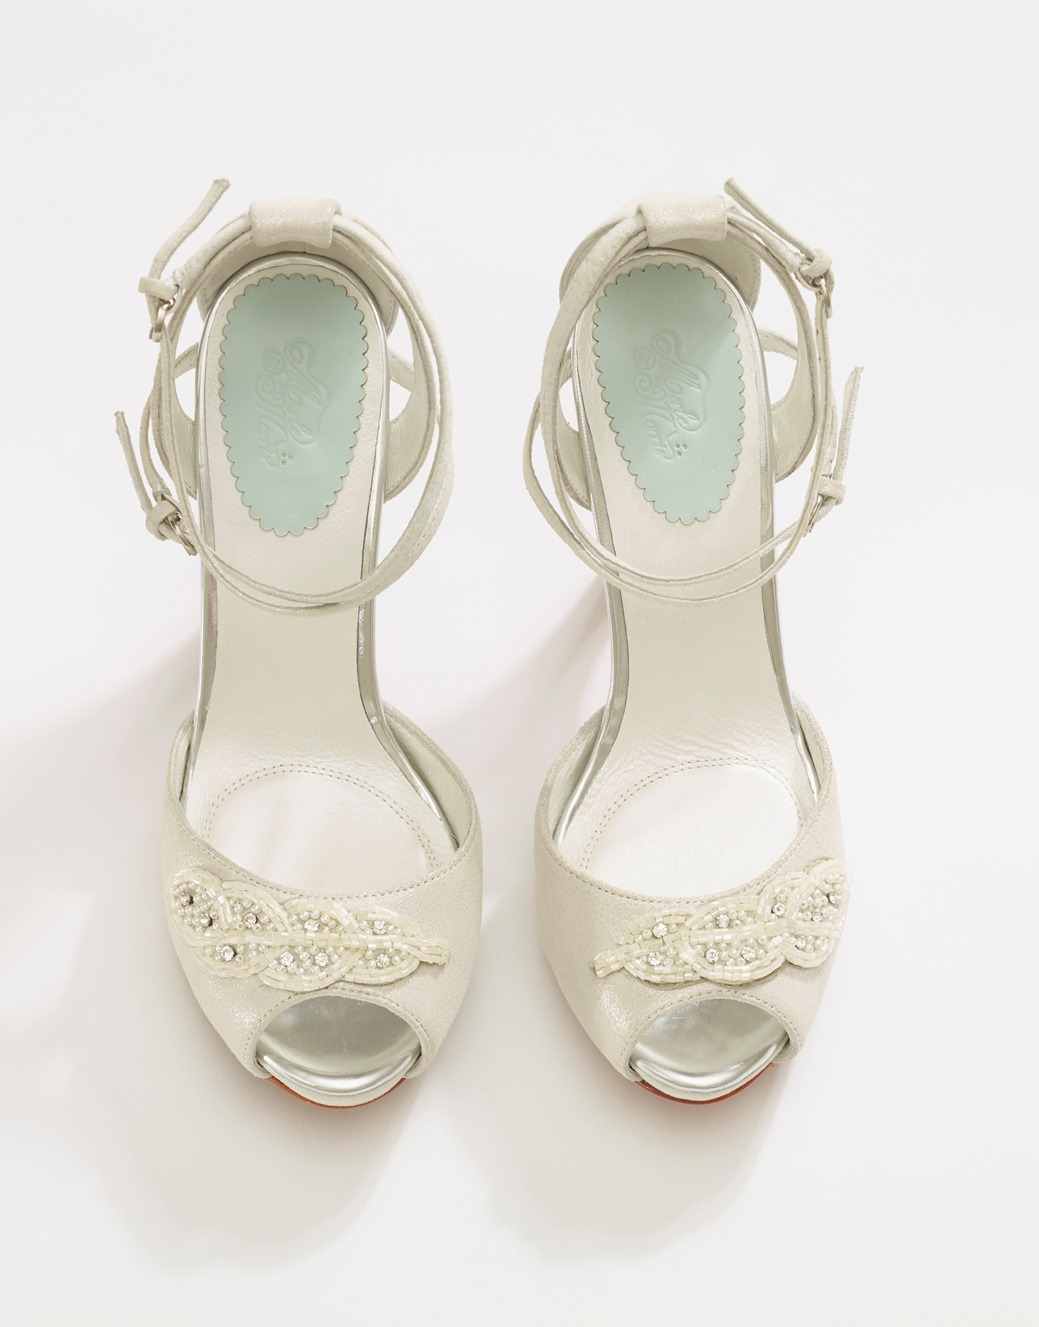 Beautiful Bridal Shoes from Merle & Morris - Myrtle